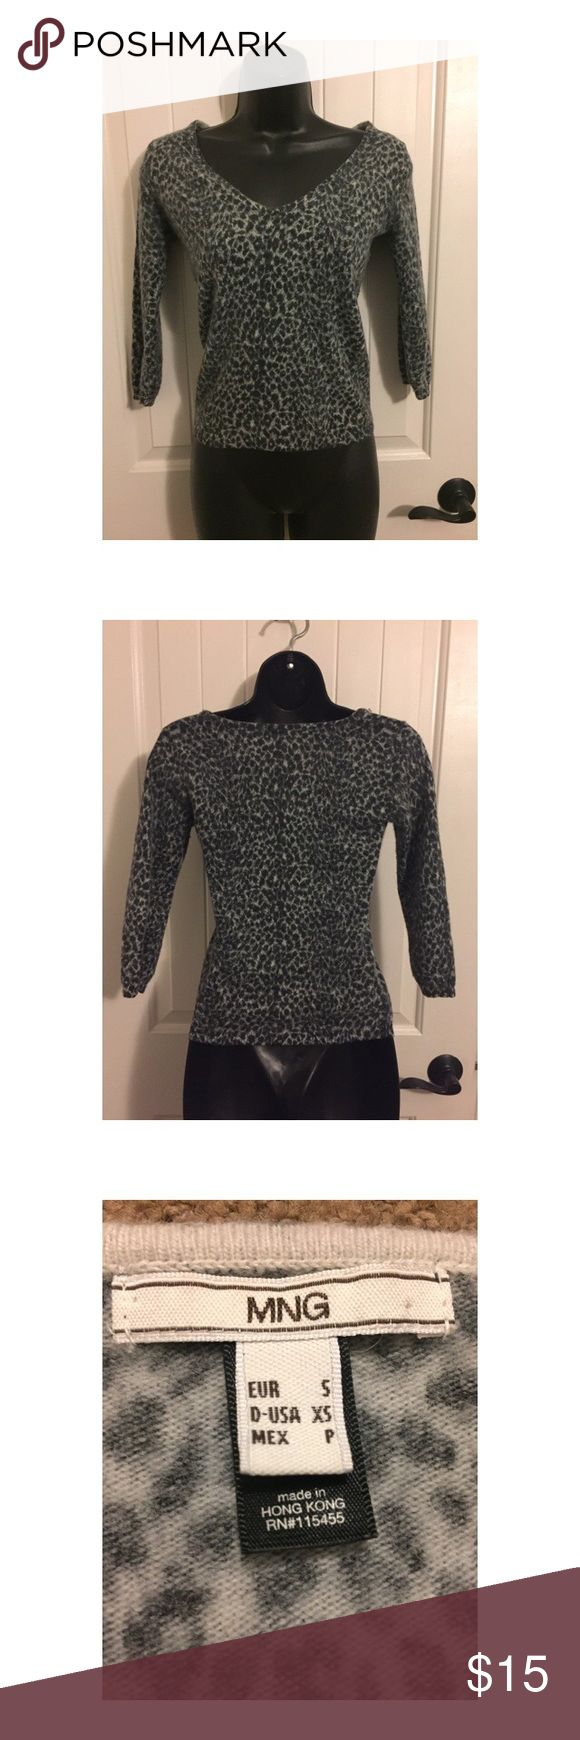 Back and grey cheetah print v neck shirt XS MNG. XS, Black and grey half sleeve v neck, the brand is MNG. Super soft fabric cheetah print. MNG Tops Tees - Long Sleeve